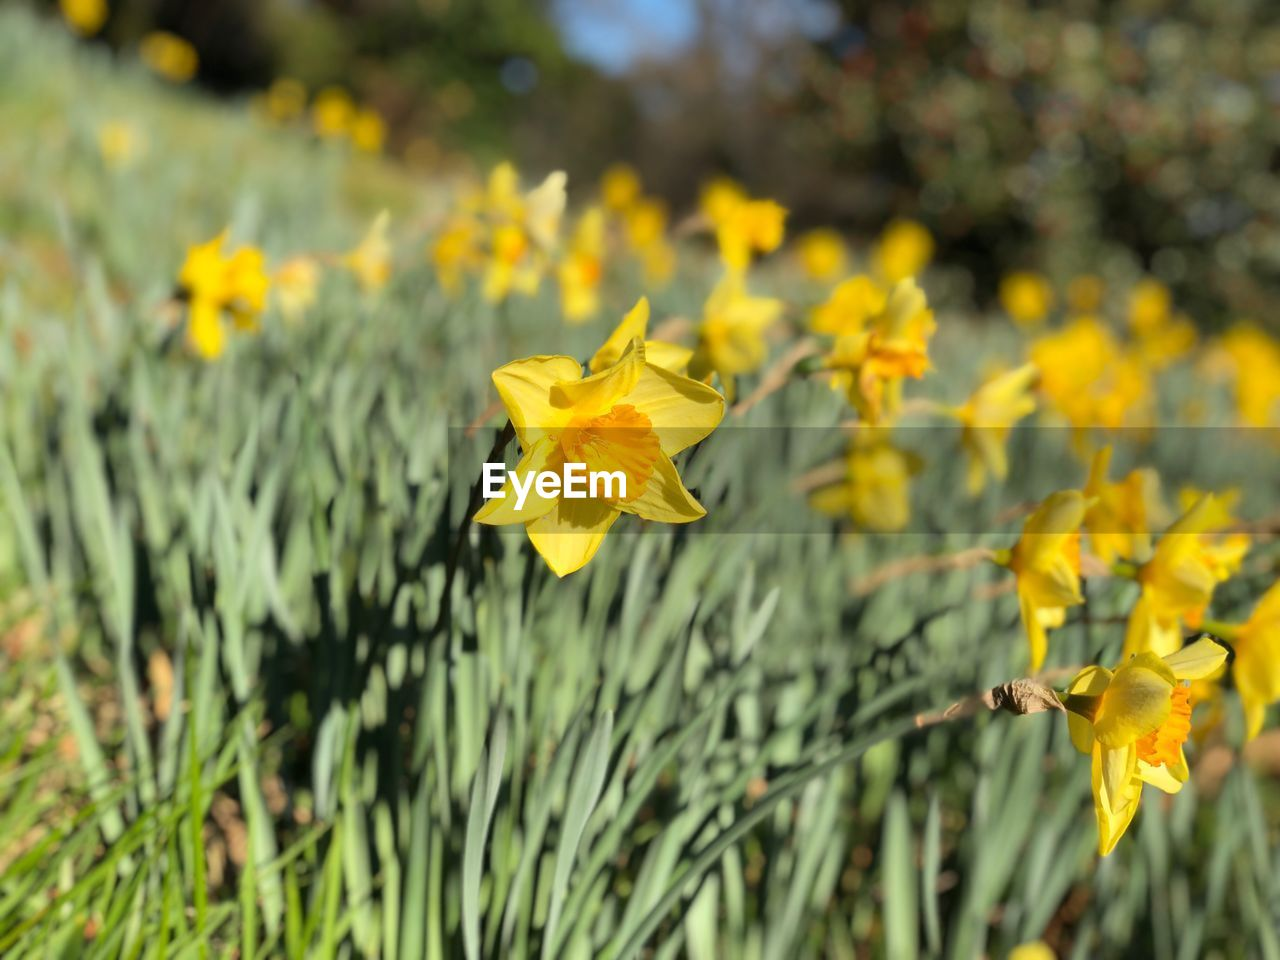 flowering plant, plant, flower, growth, yellow, vulnerability, fragility, beauty in nature, freshness, close-up, petal, nature, flower head, inflorescence, focus on foreground, no people, field, day, land, daffodil, outdoors